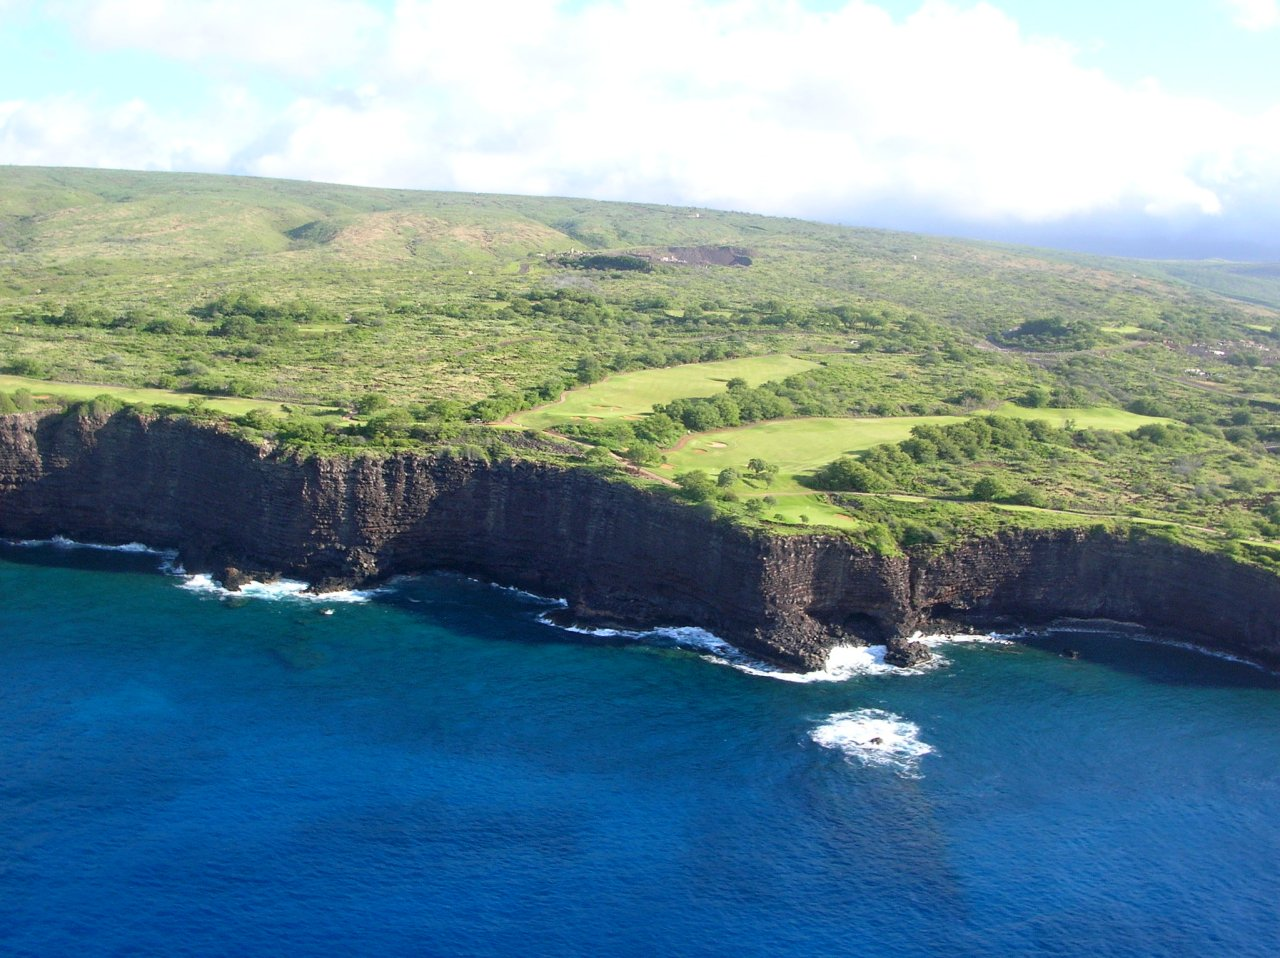 Manele Bay, Hawaii, Best Beaches in the USA